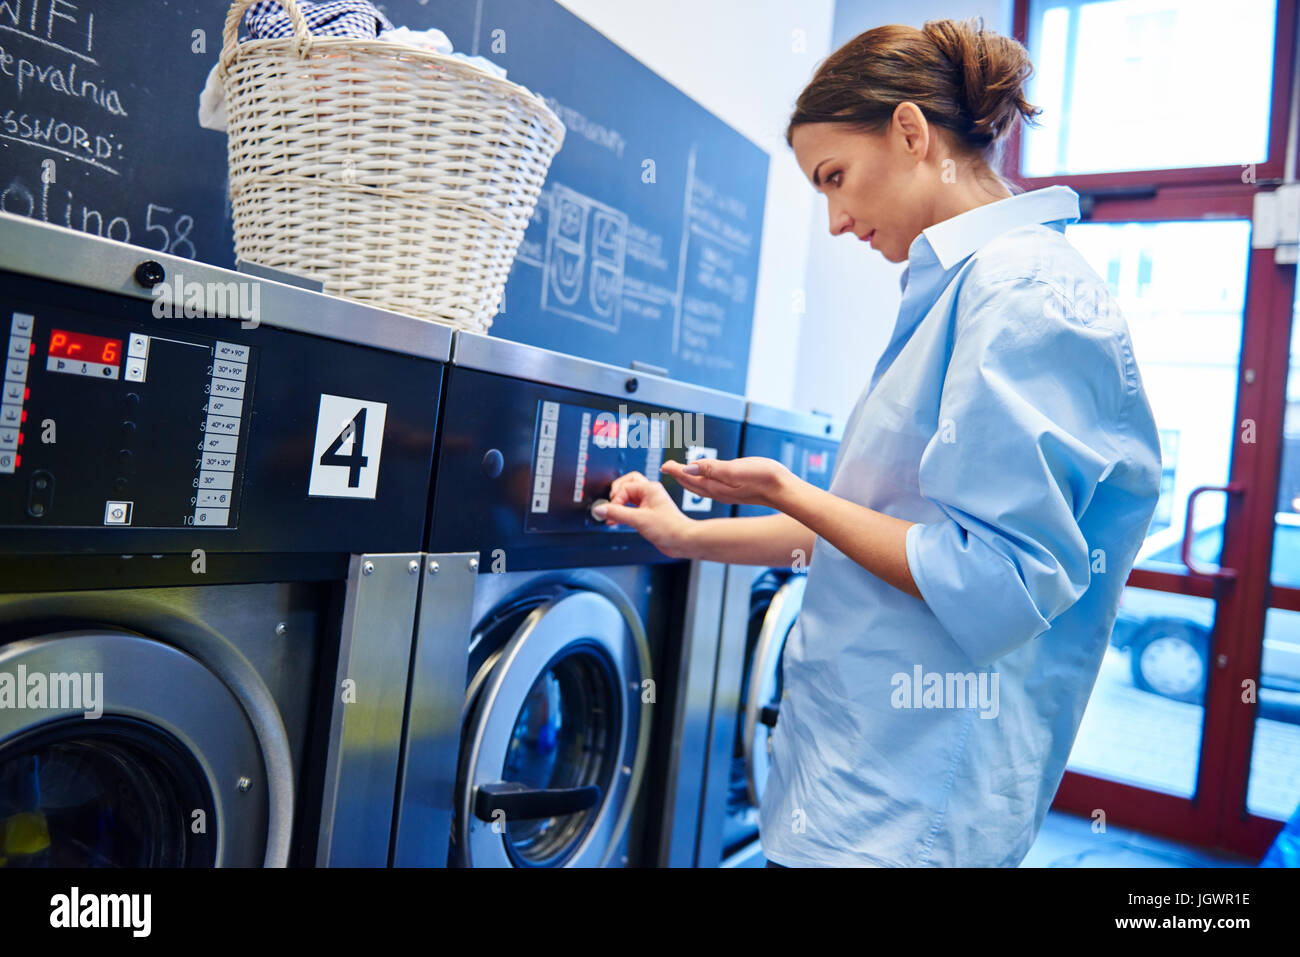 Woman inserting coins into washing machine at laundrette - Stock Image